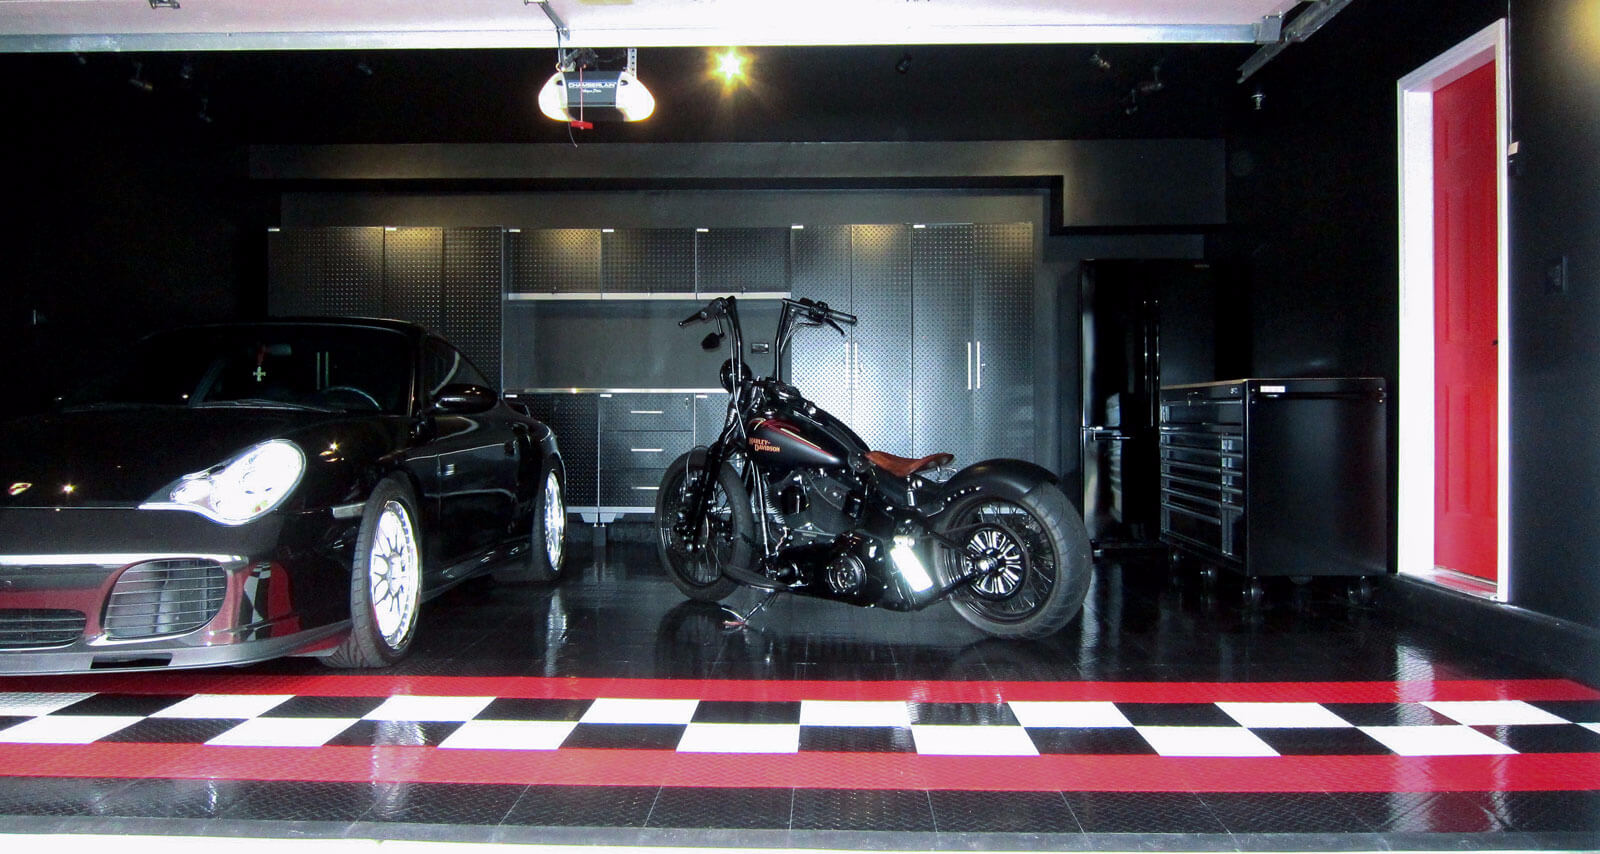 Posrche and Harley in a garage with RaceDeck Diamond TuffShield high-gloss finish